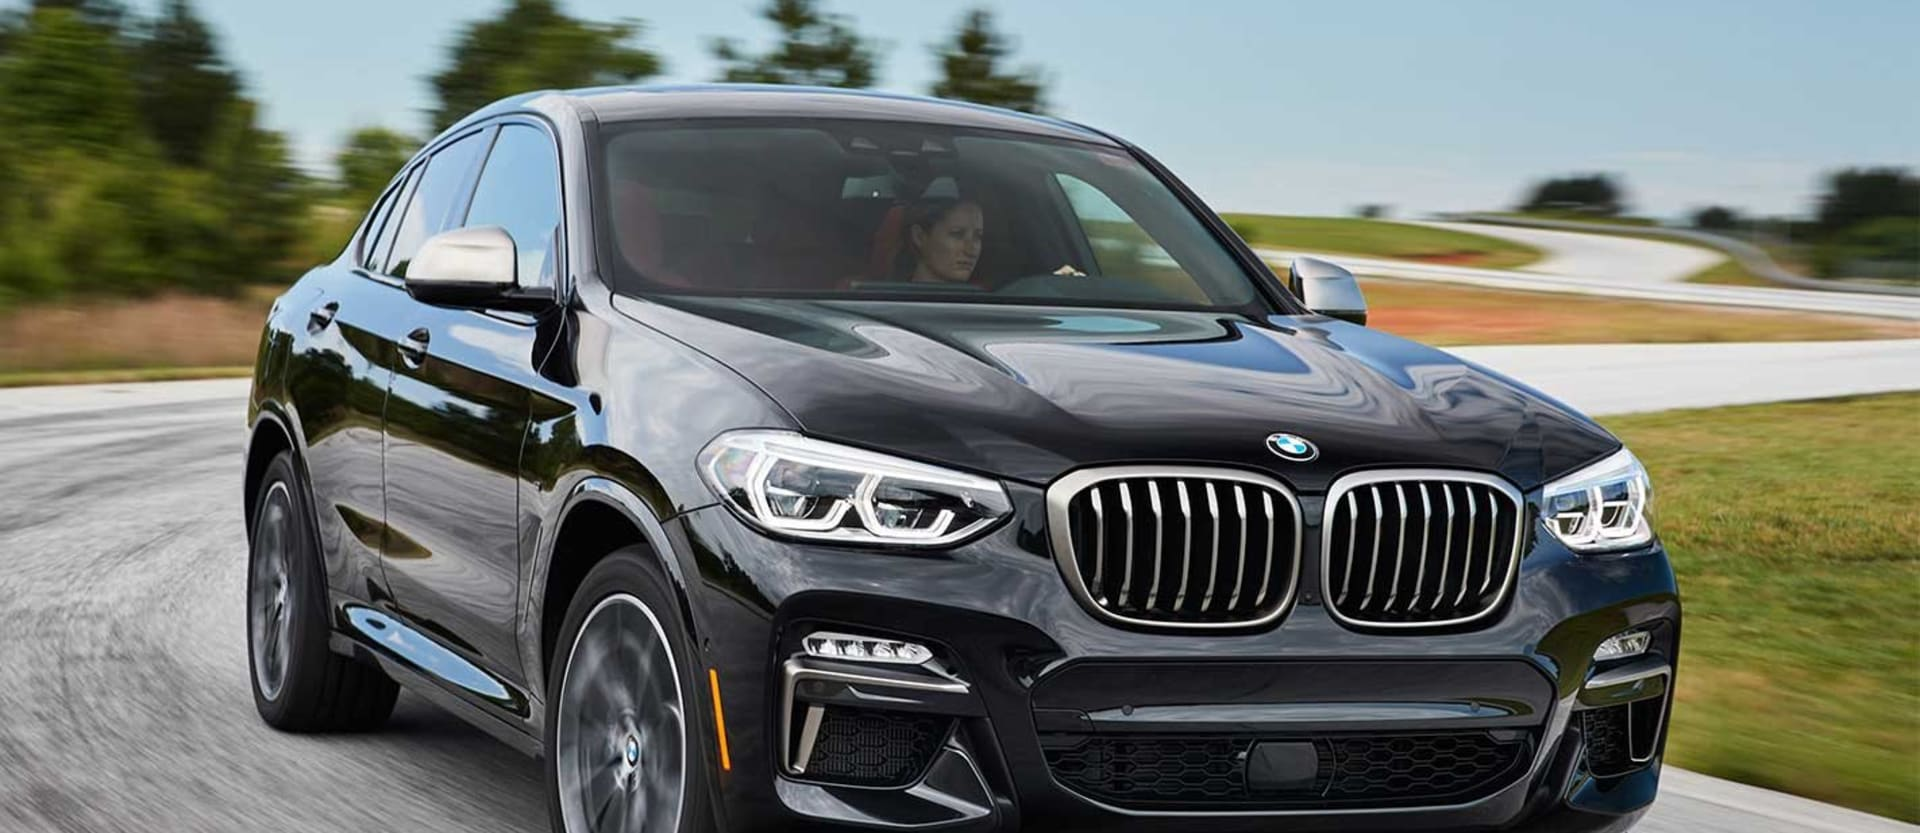 2018 BMW X4 M40i quick performance review